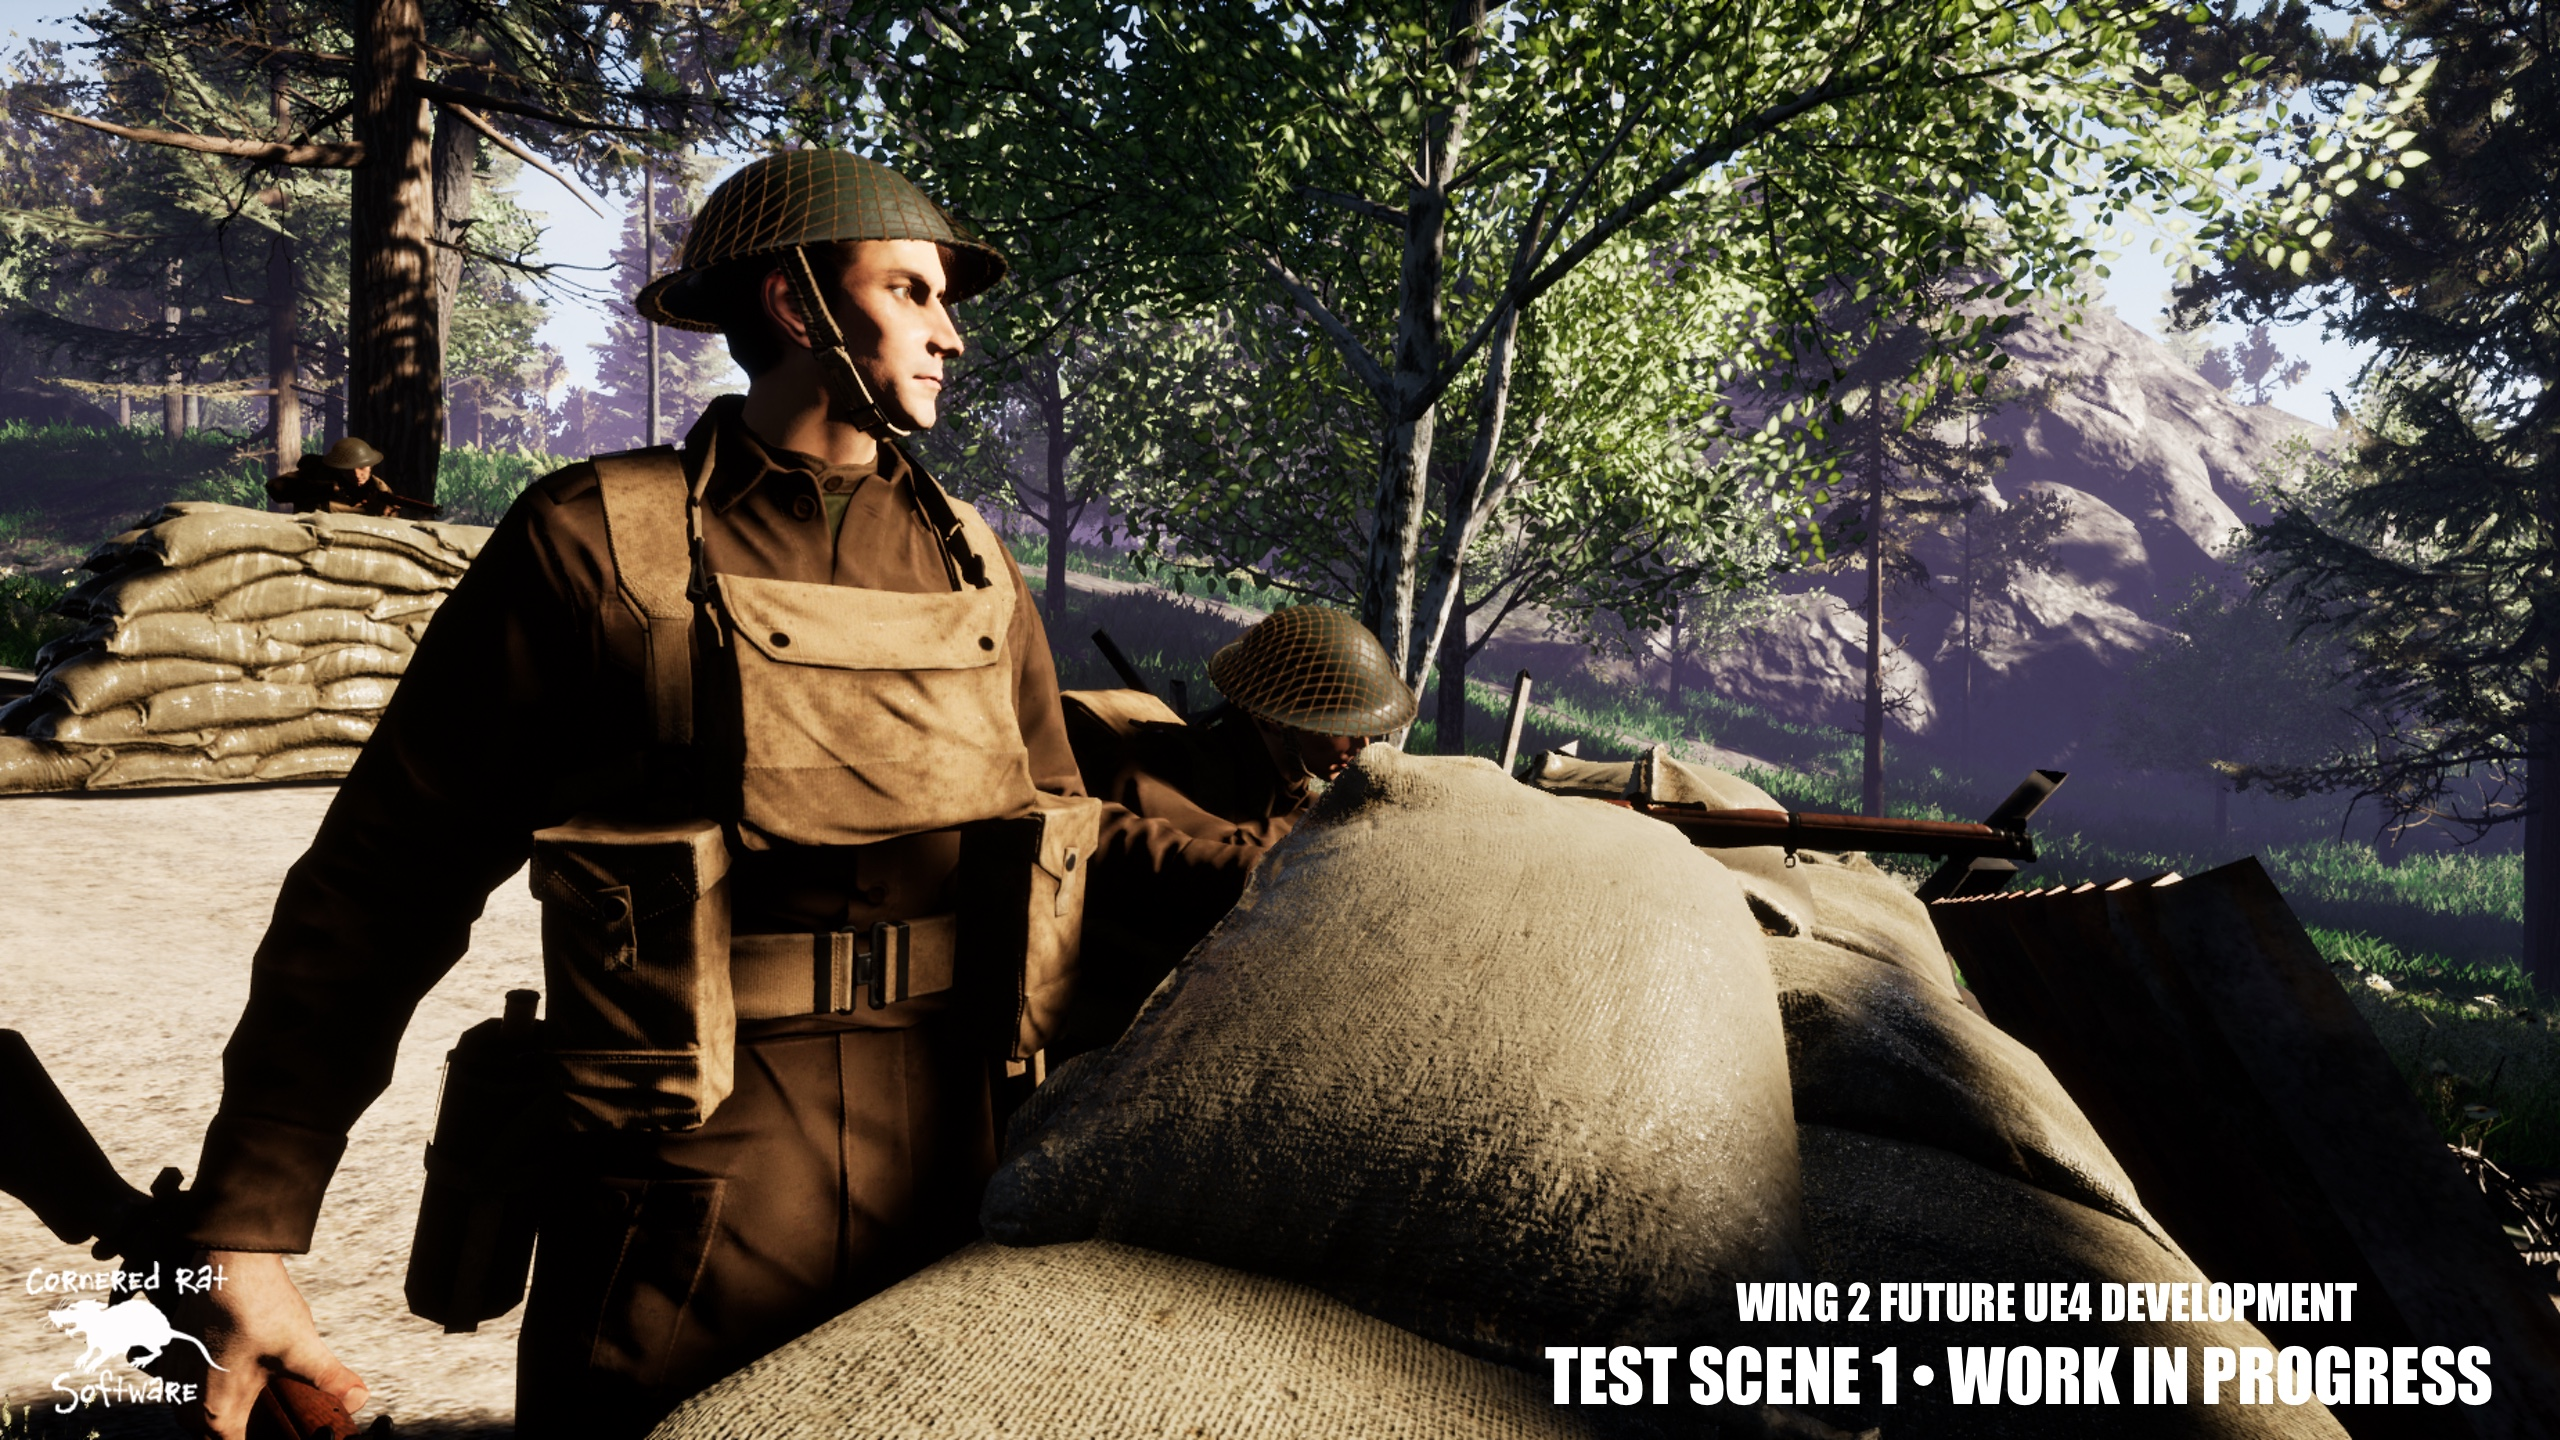 Our first test scene, a British defensive position alongside a road.